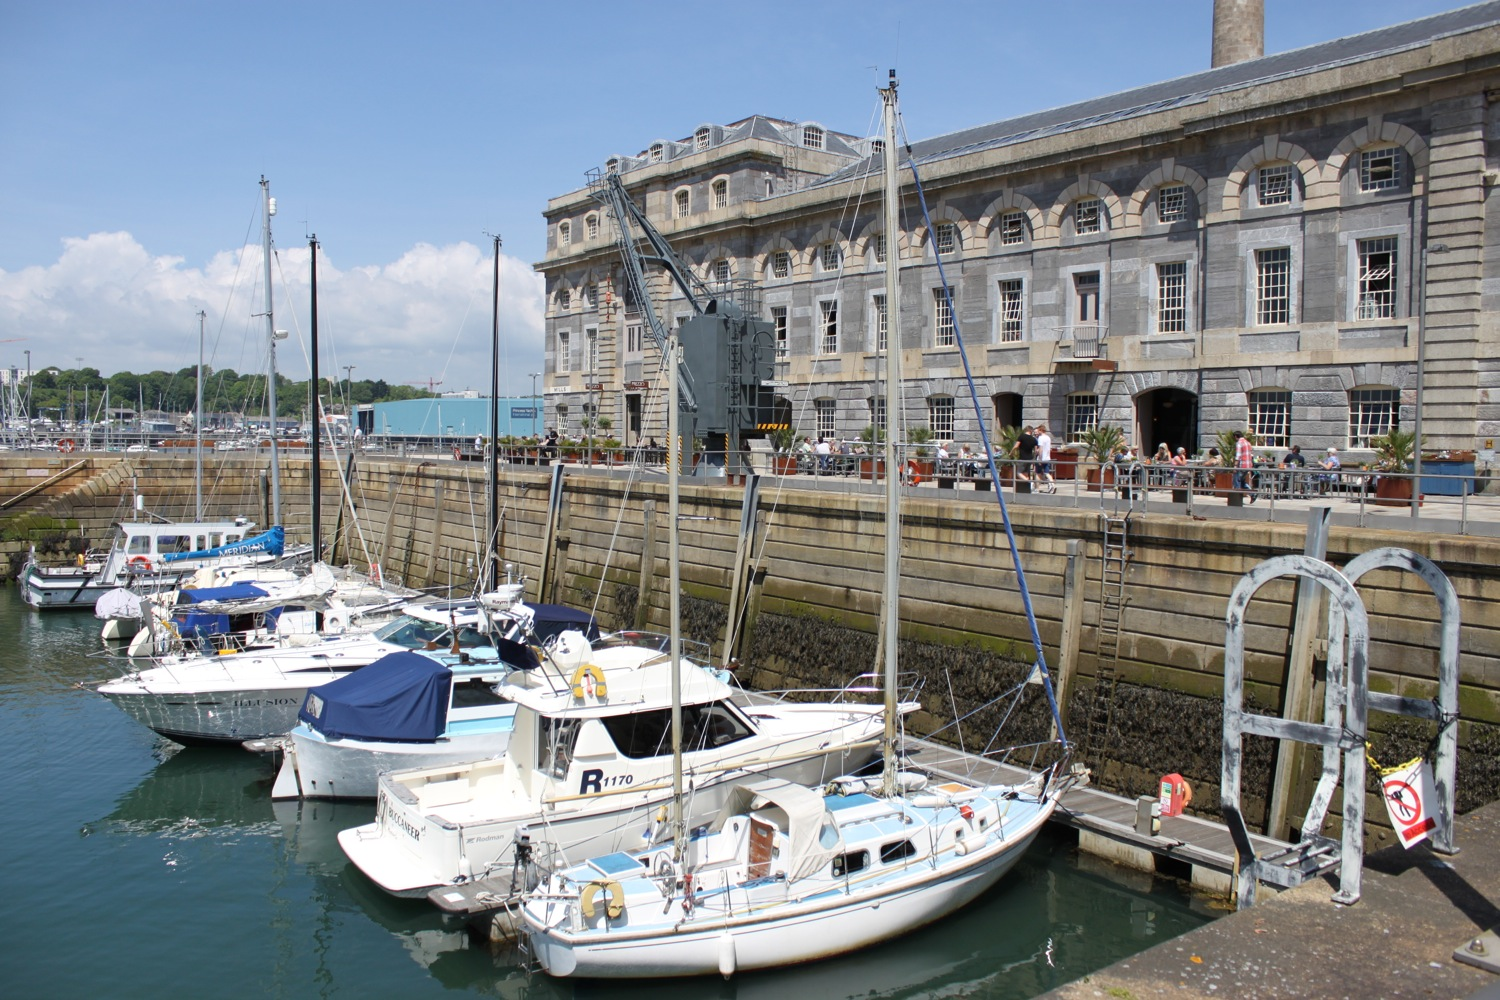 royal william yard